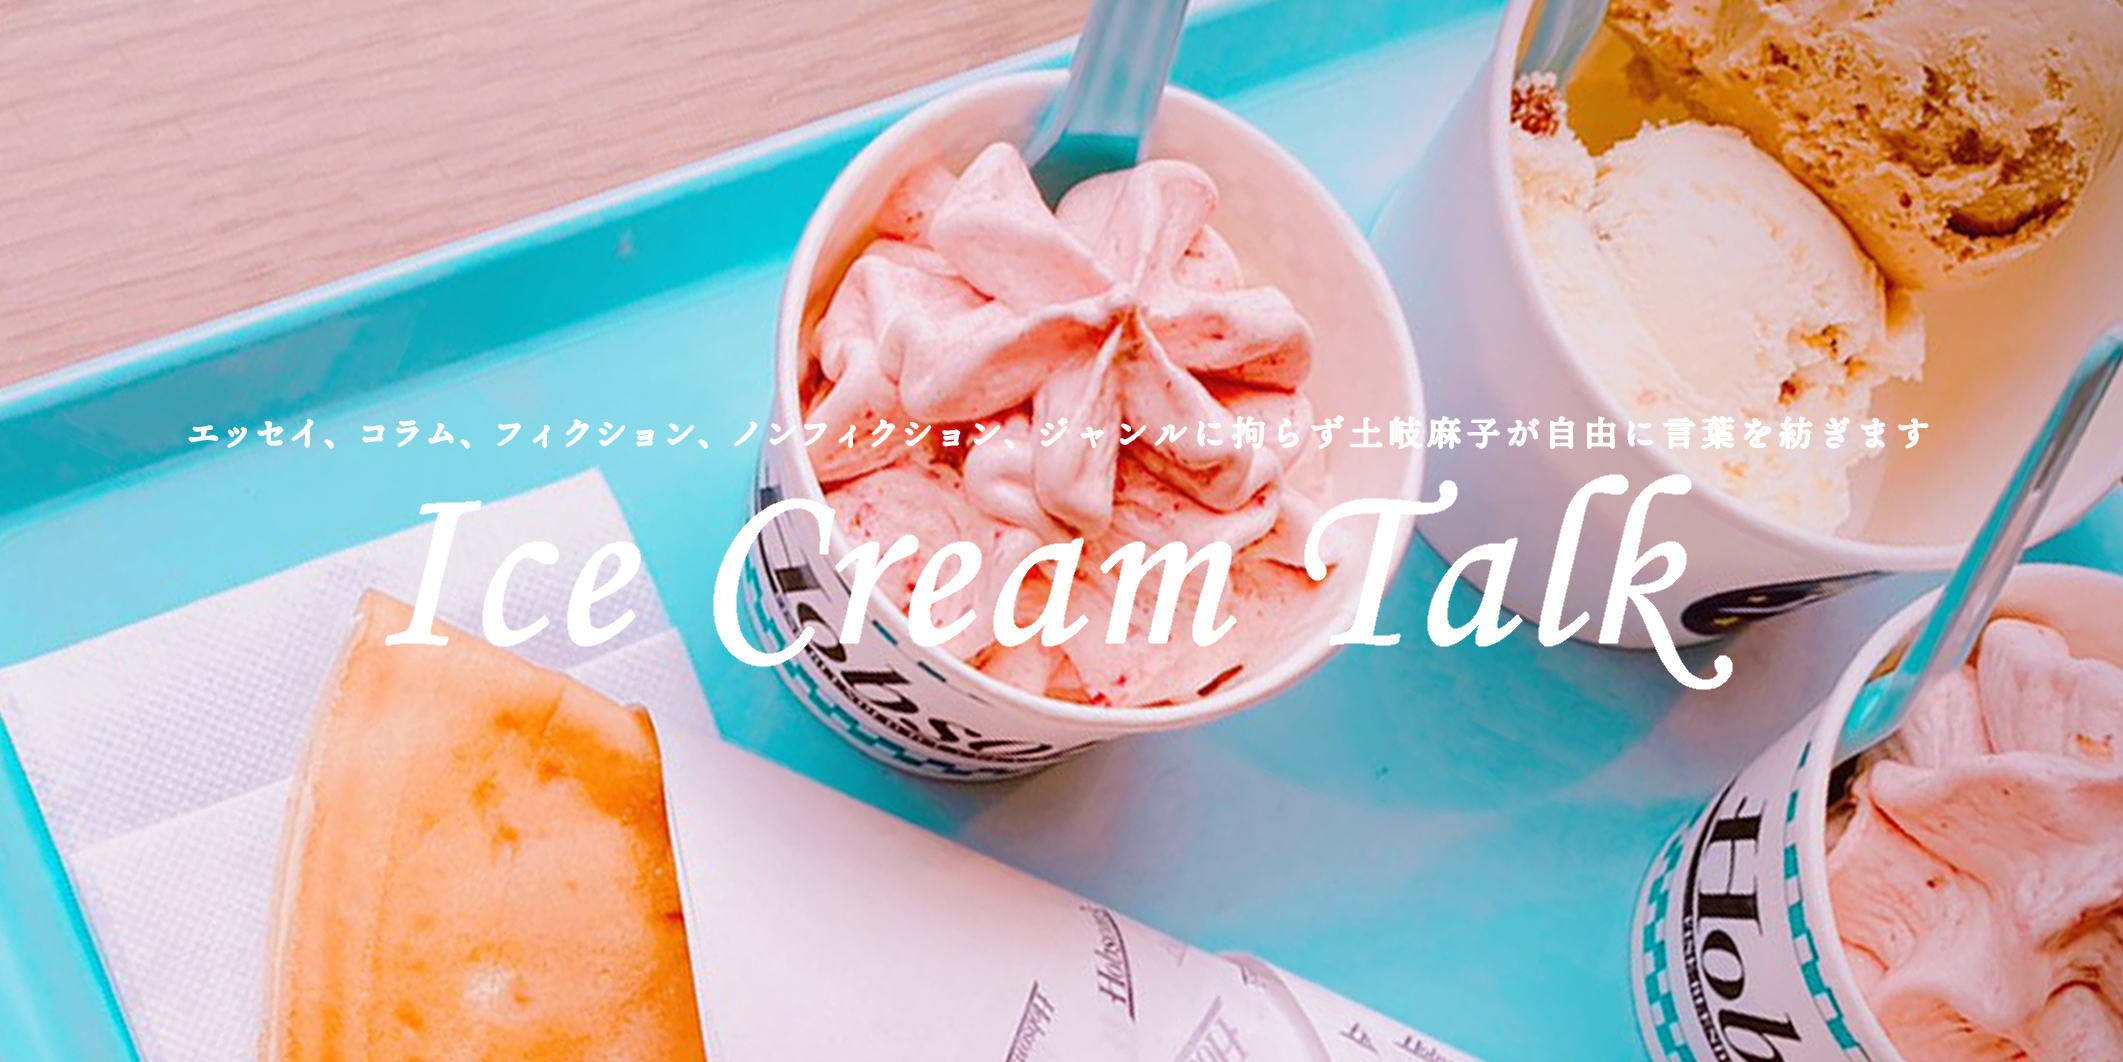 Ice Cream Talk